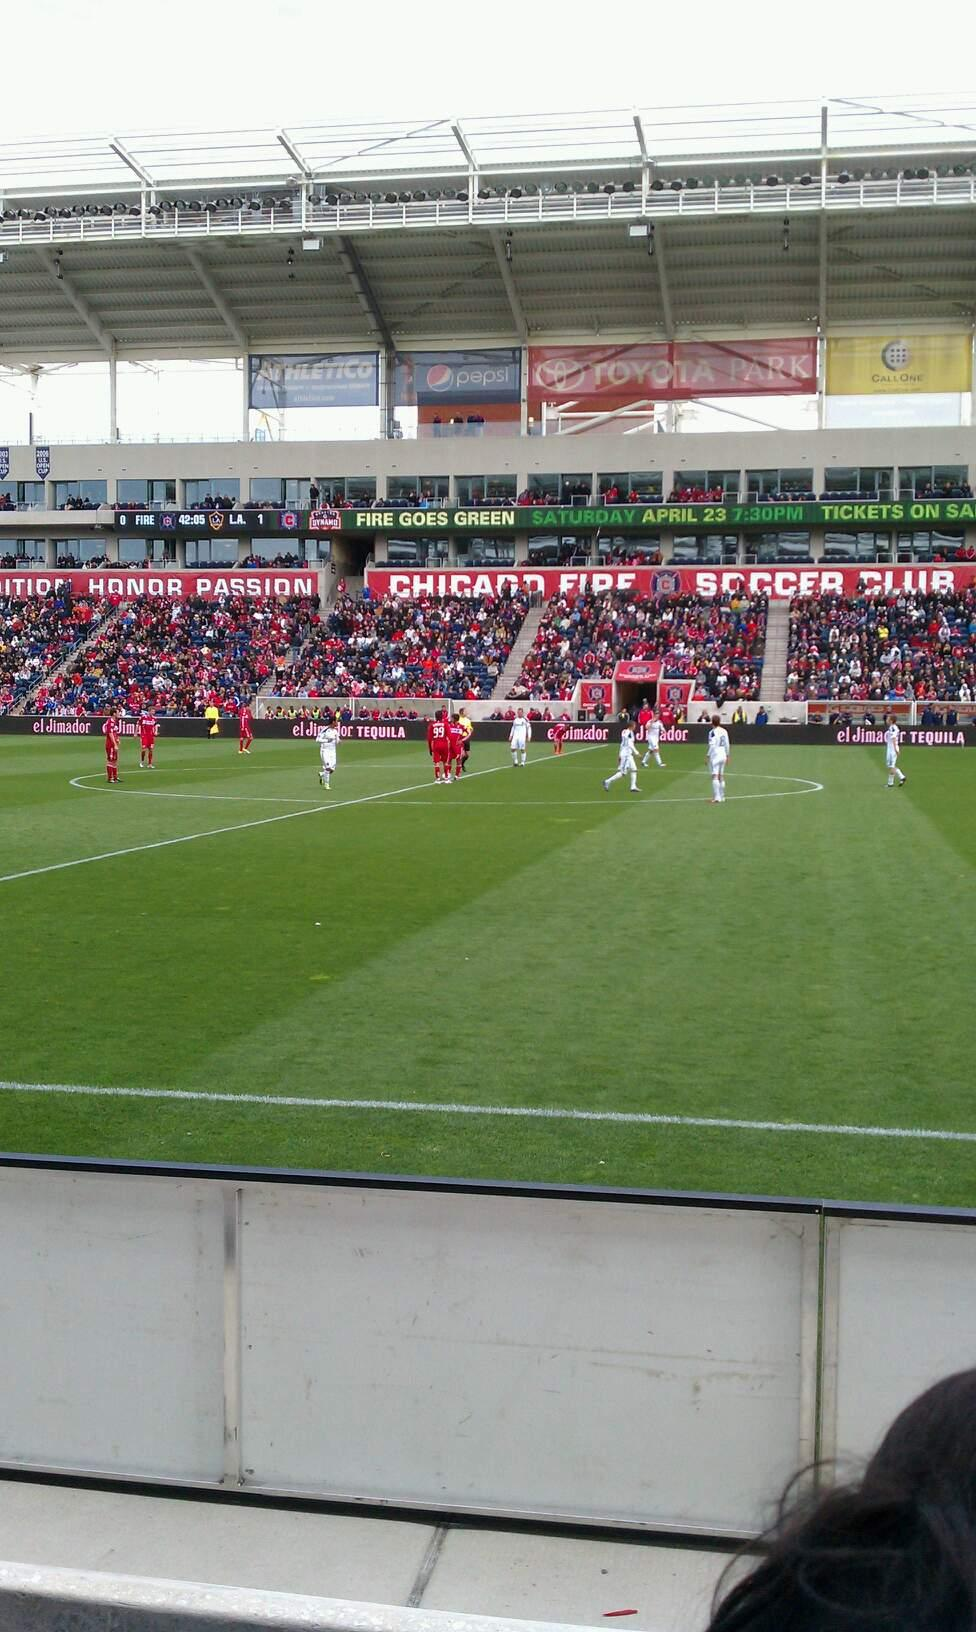 Toyota Park Section 106 Row 3 Seat 20